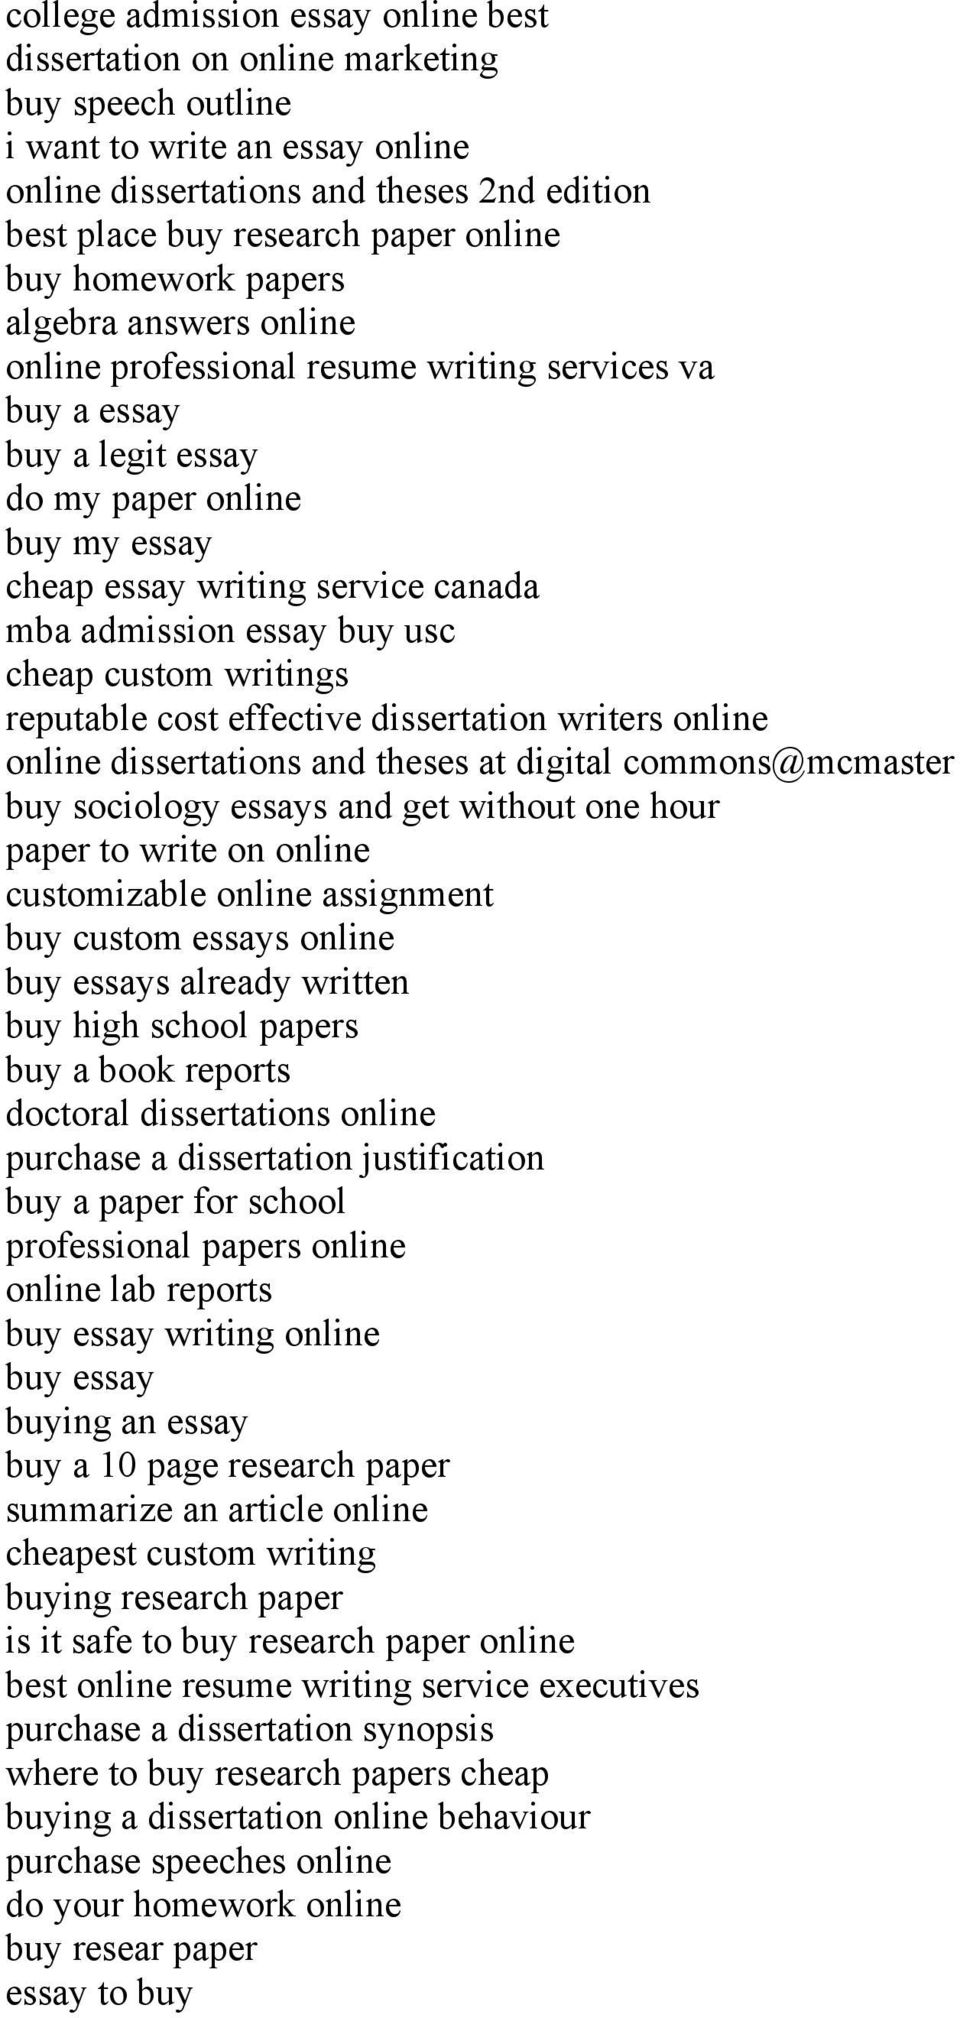 admission essay buy usc cheap custom writings reputable cost effective dissertation writers online online dissertations and theses at digital commons@mcmaster buy sociology essays and get without one